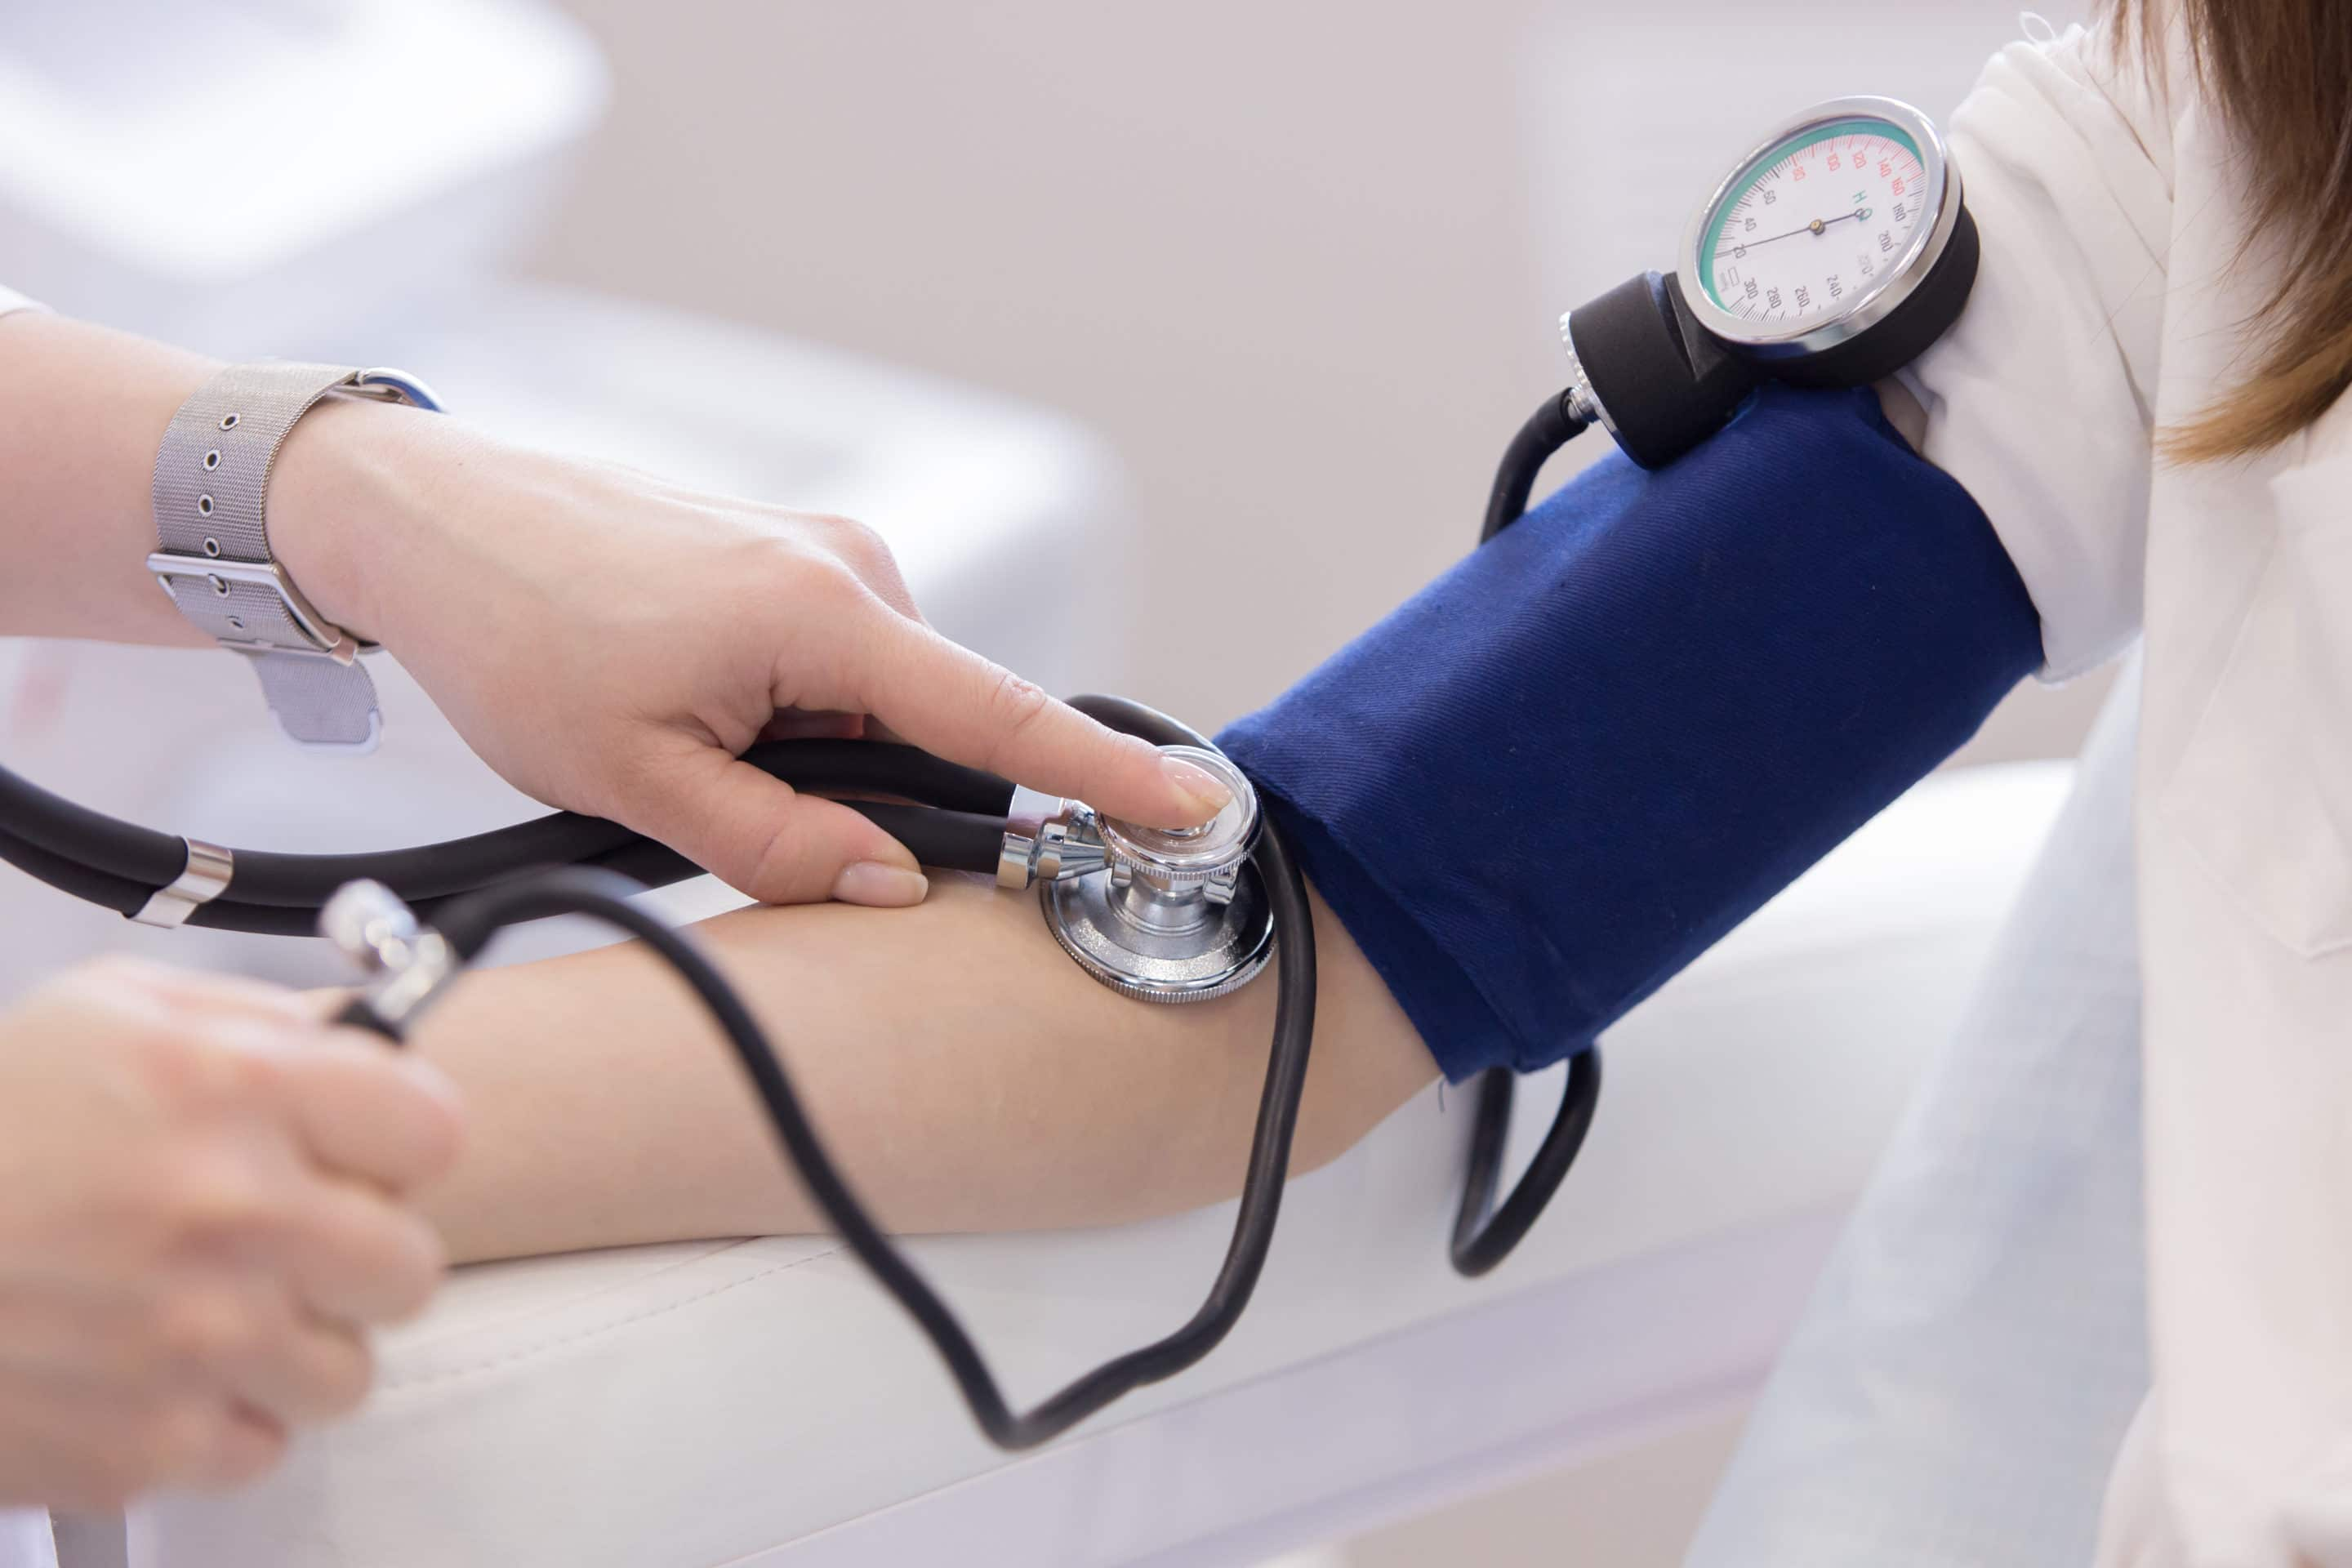 High Blood Pressure: What Foods Should You Avoid?